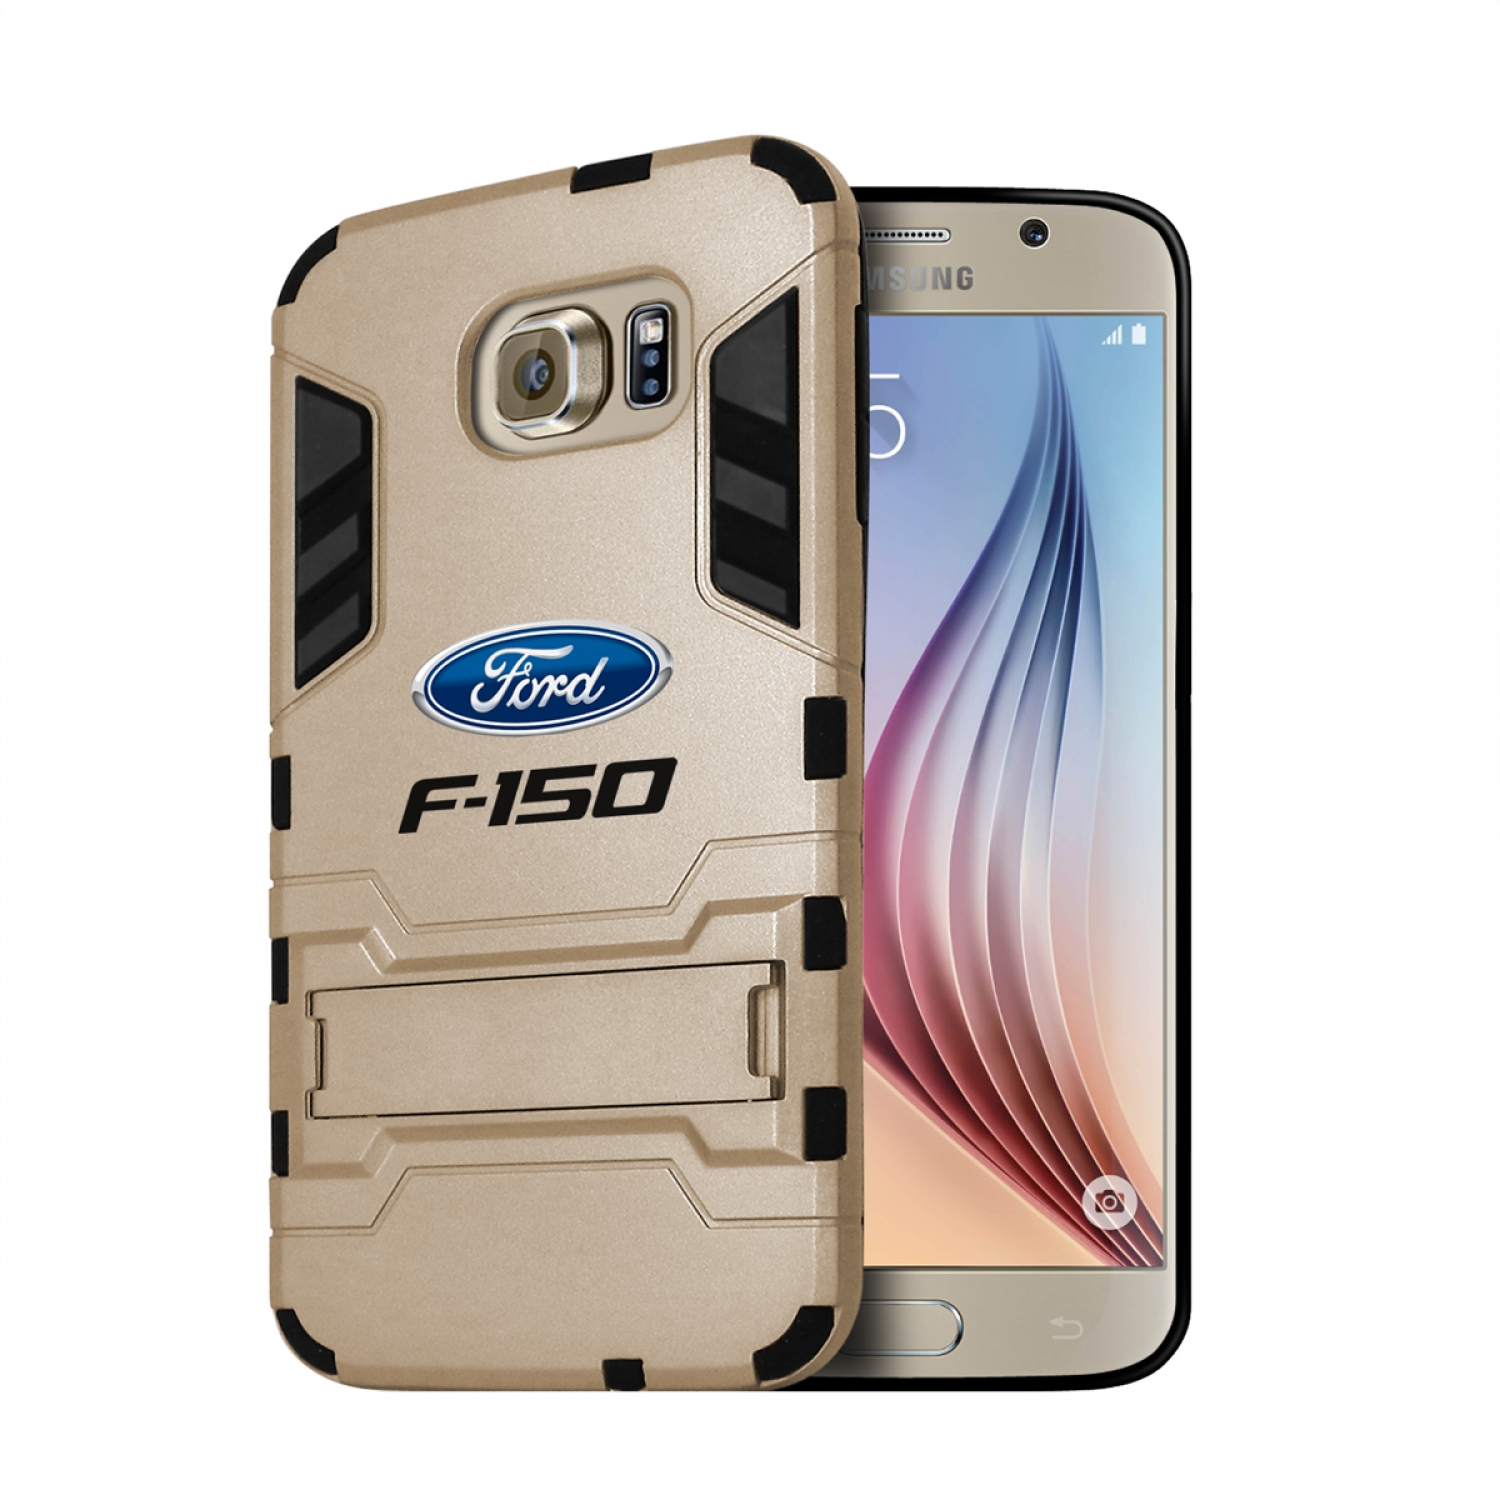 Ford F-150 Samsung Galaxy S6 Shockproof TPU ABS Hybrid Golden Phone Case